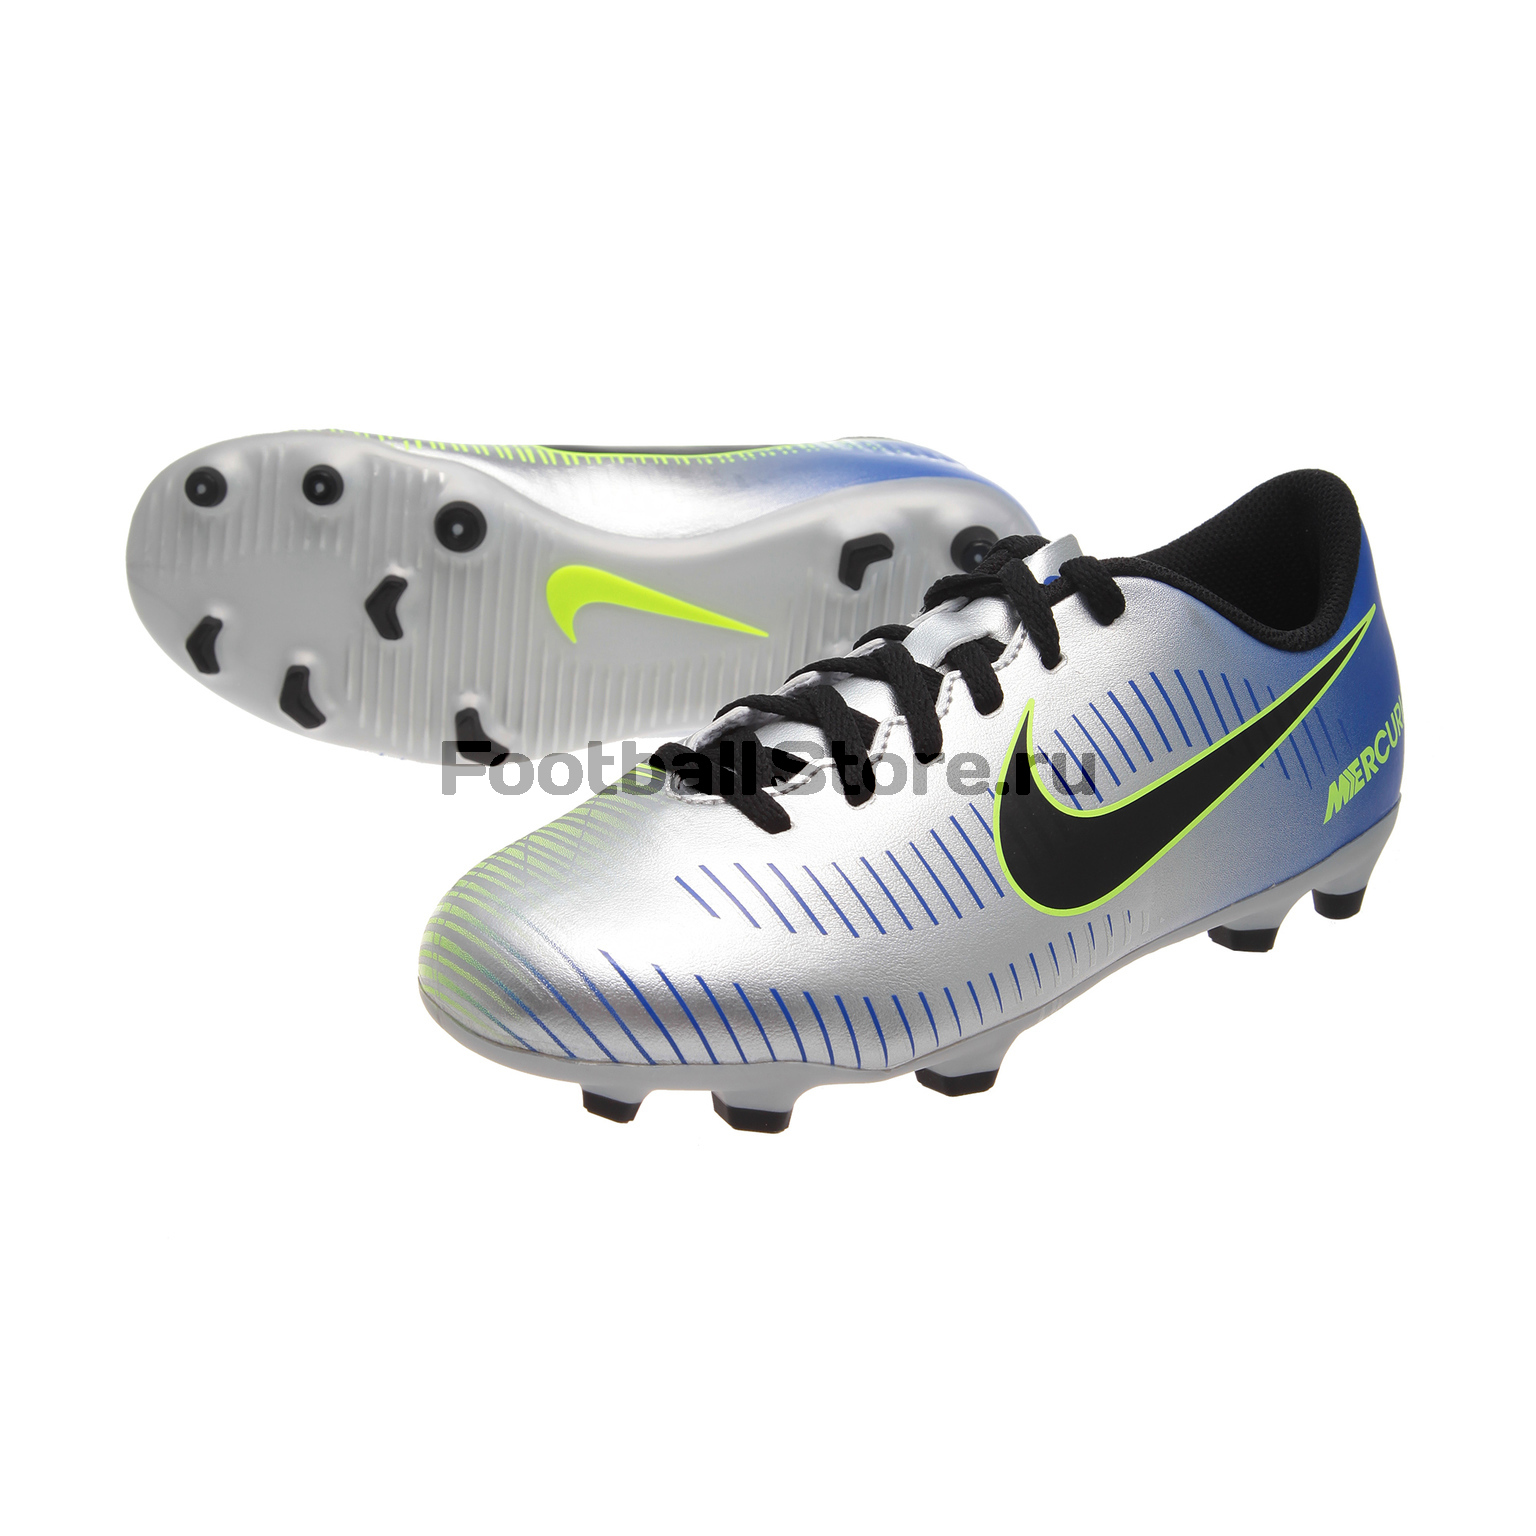 Бутсы Nike JR Mercurial Vortex III NJR FG 921490-407 детские бутсы nike бутсы nike jr phantom 3 elite df fg ah7292 081